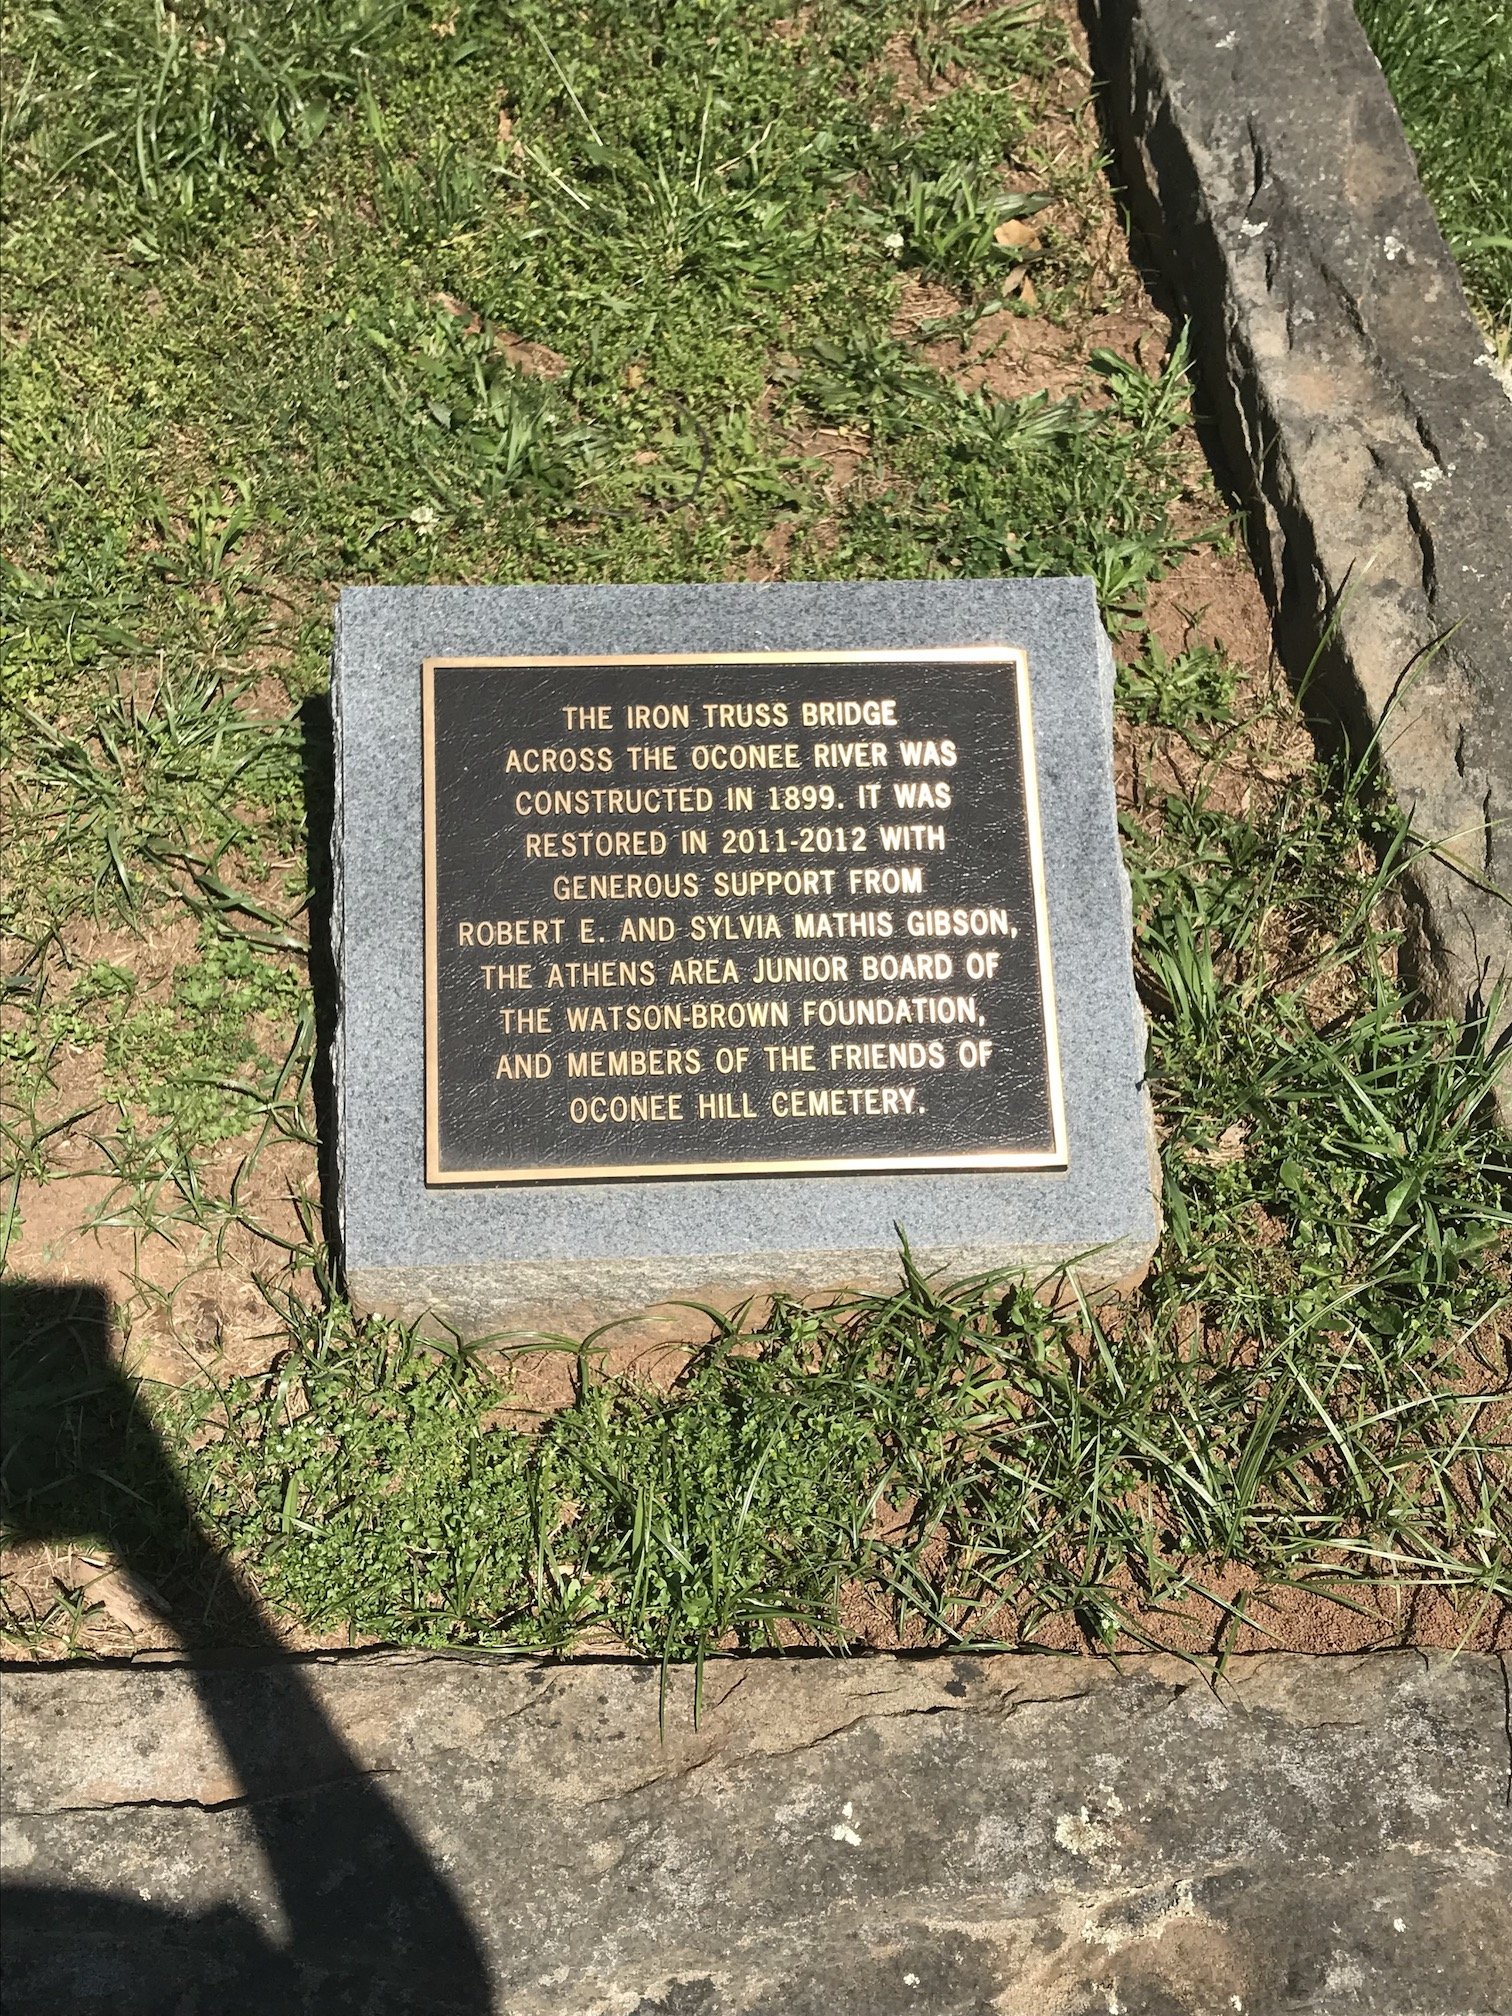 Marker describing the Iron Truss bridge that connects the older section of the cemetery to the newer